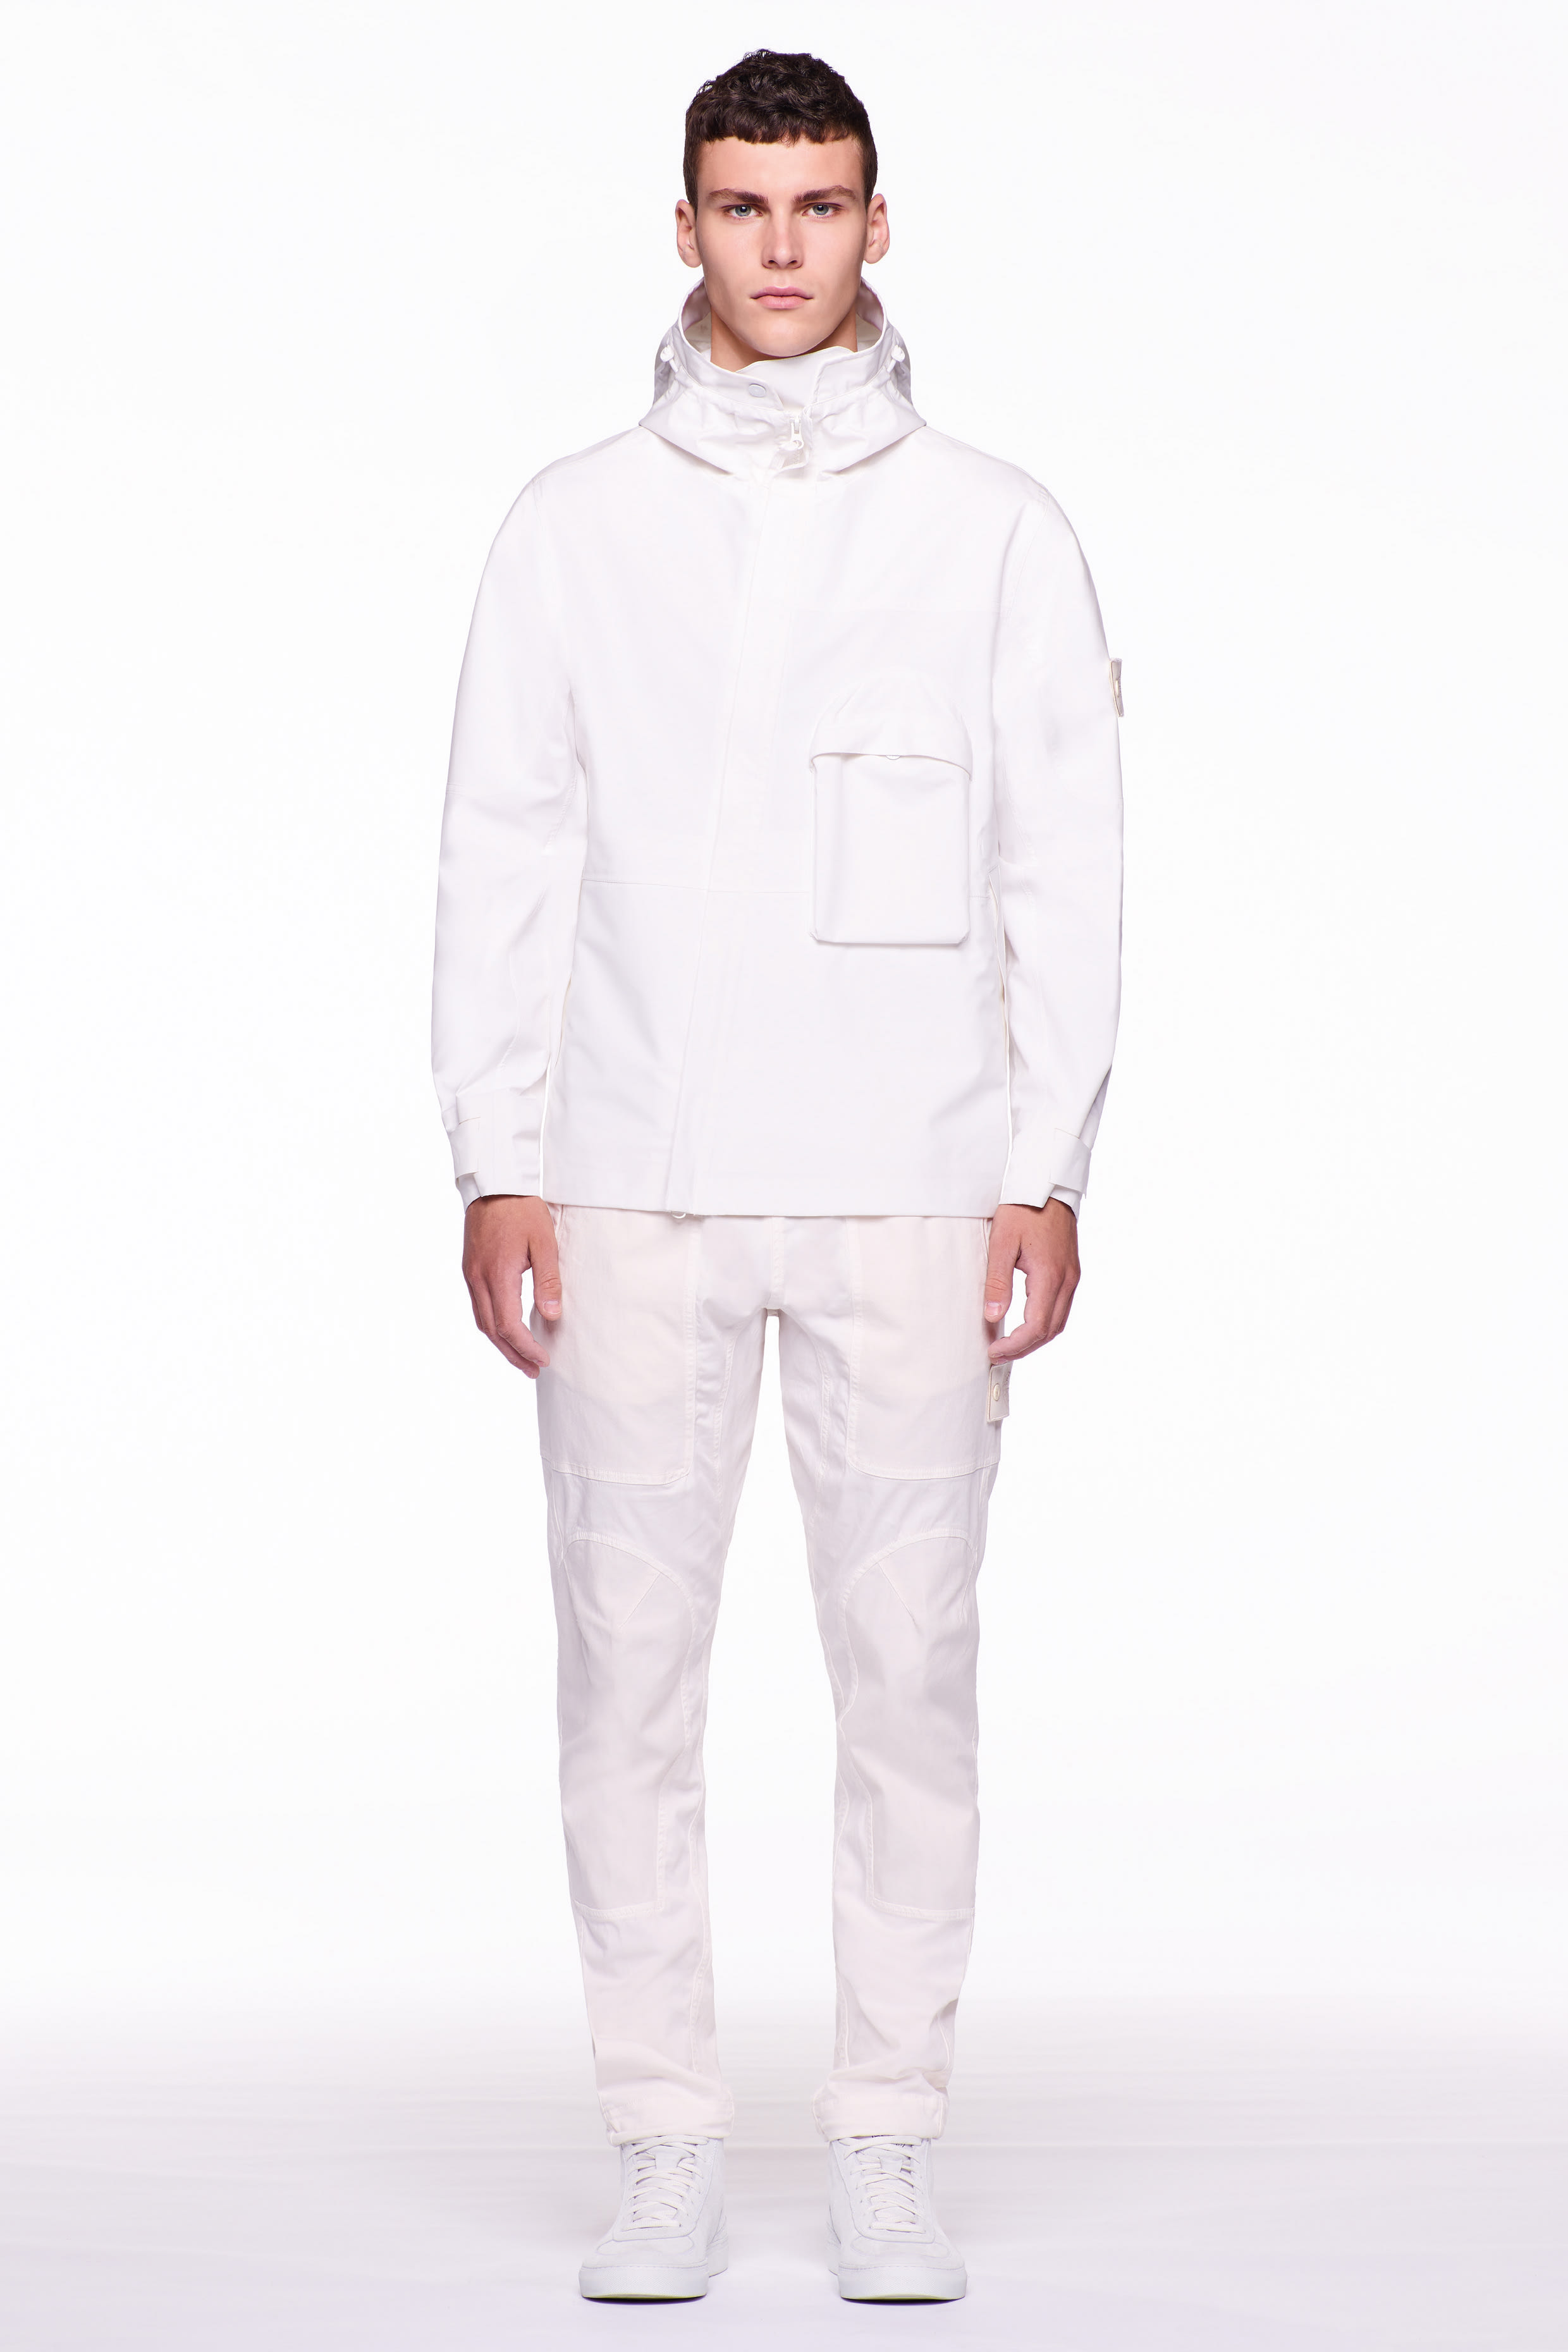 ss18-si1